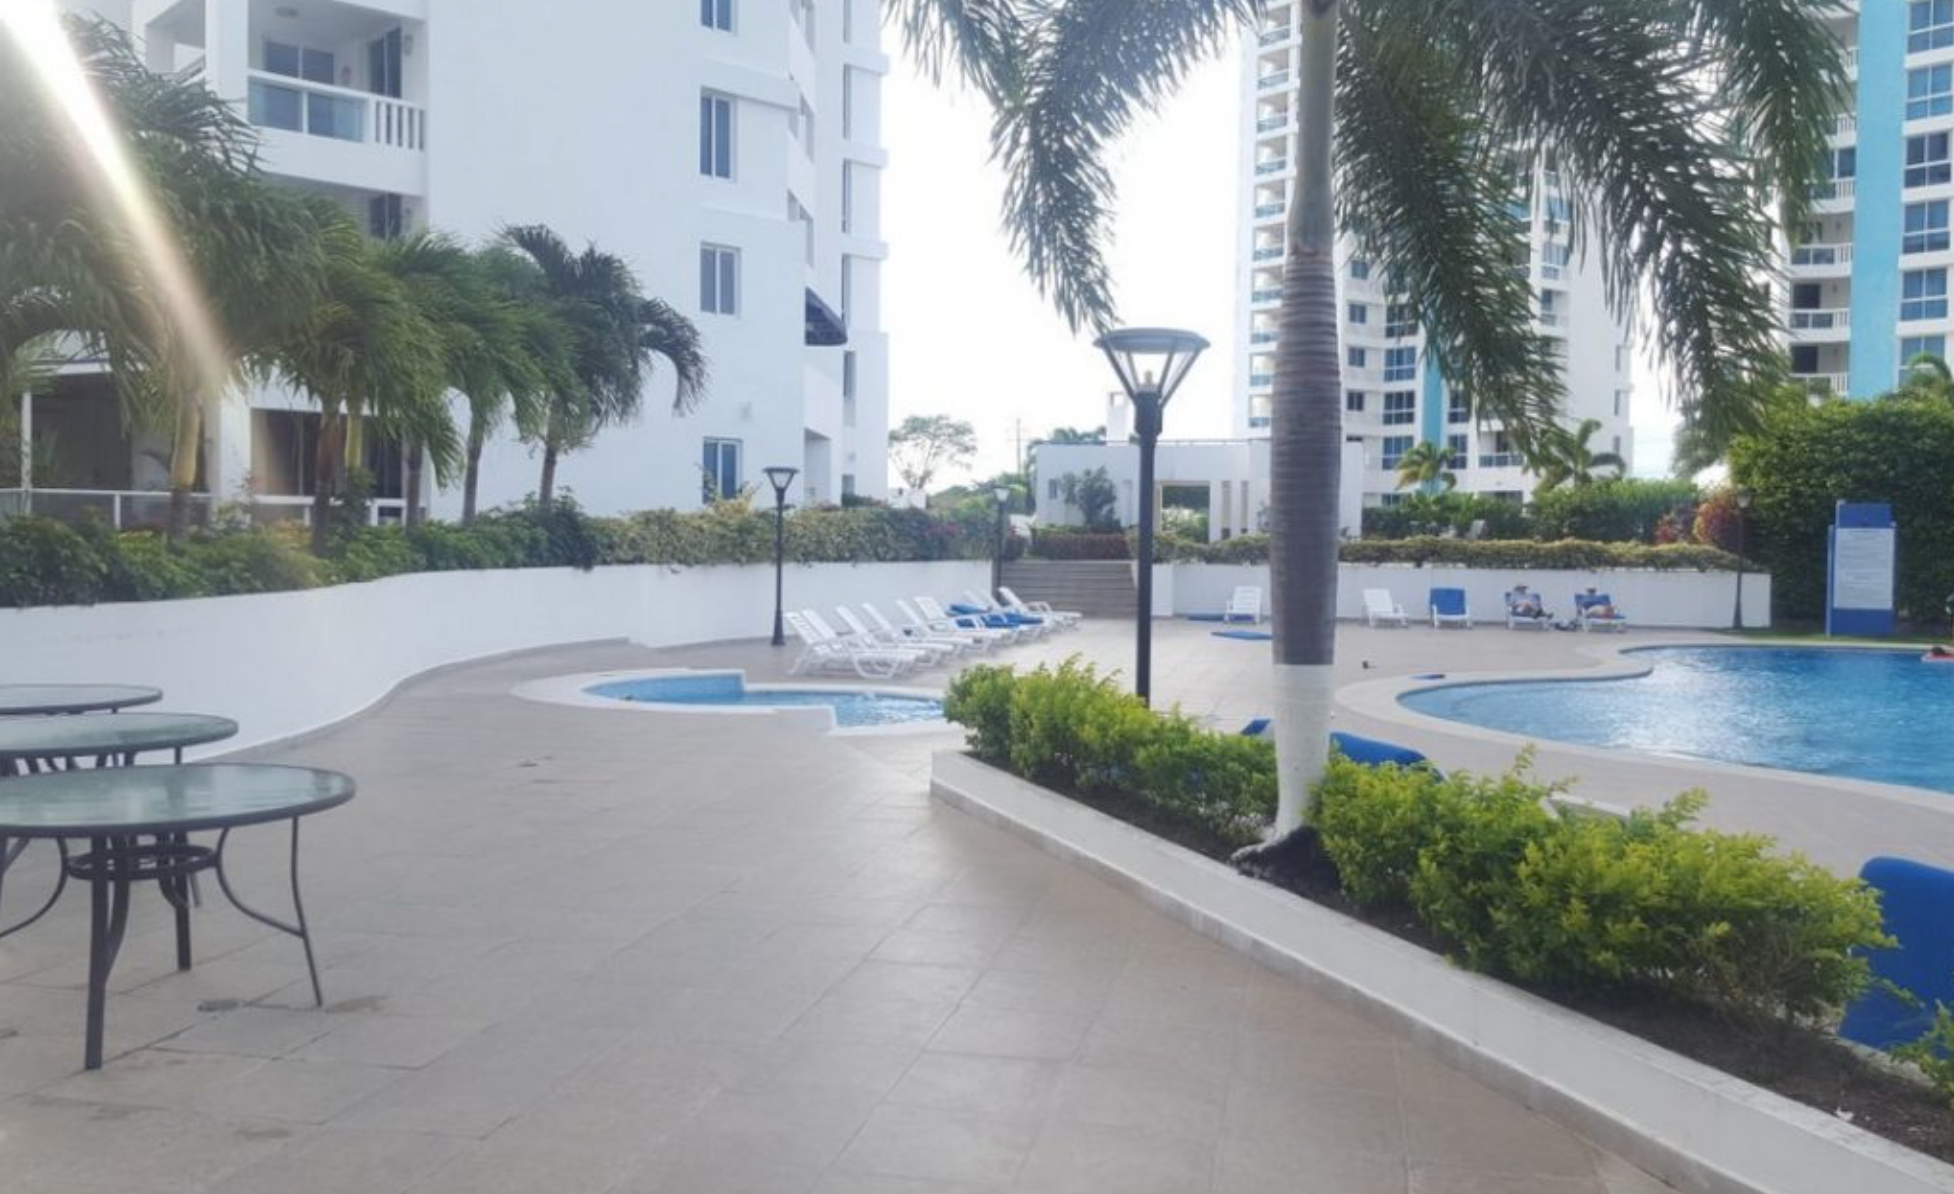 Pacific Beach Resort Only $159,000